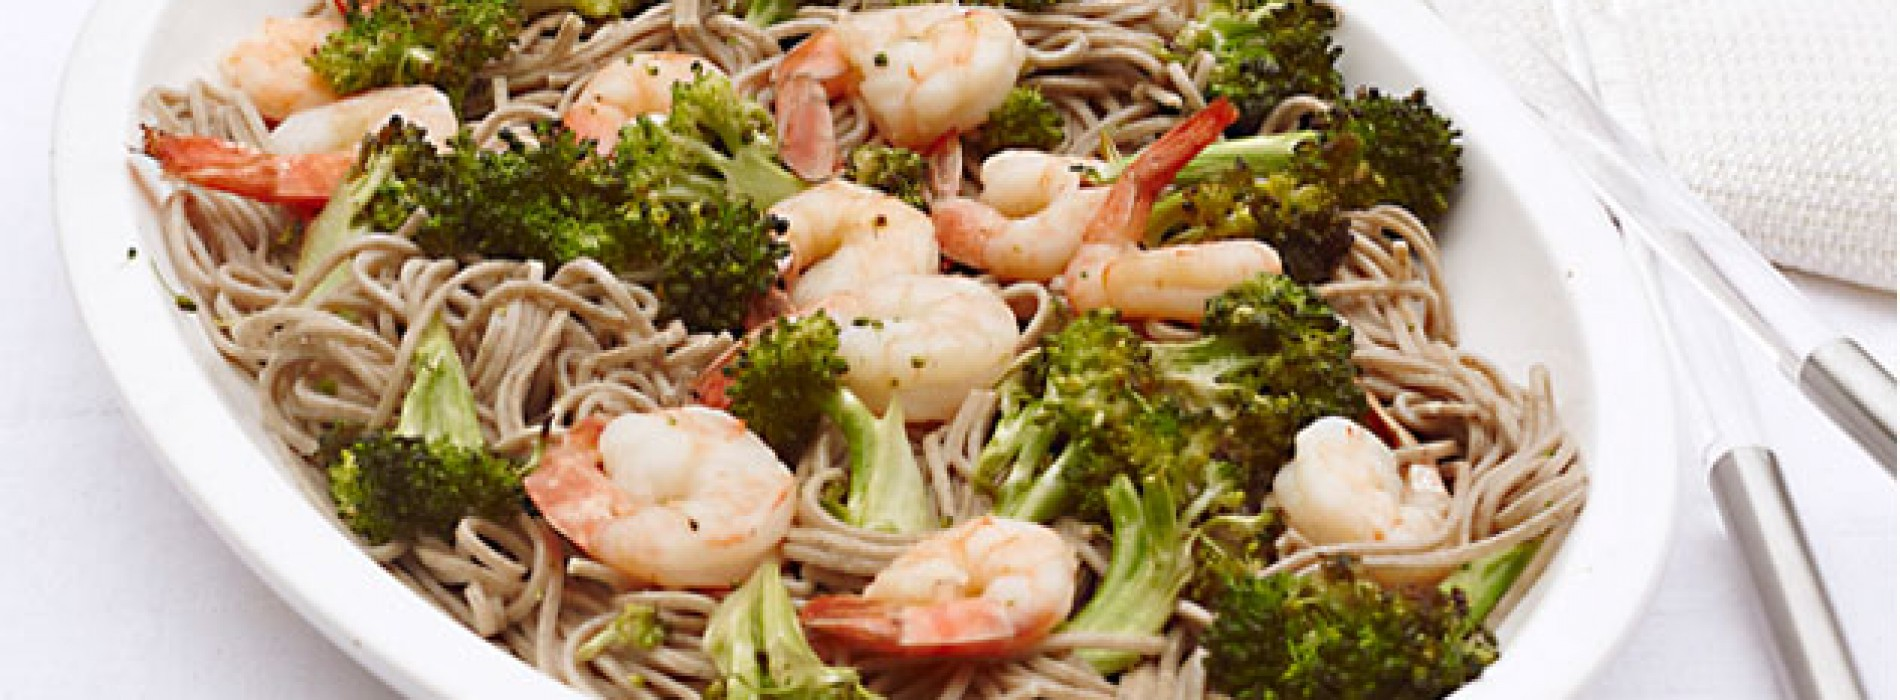 Roasted Shrimp and Broccoli With Soba Noodles